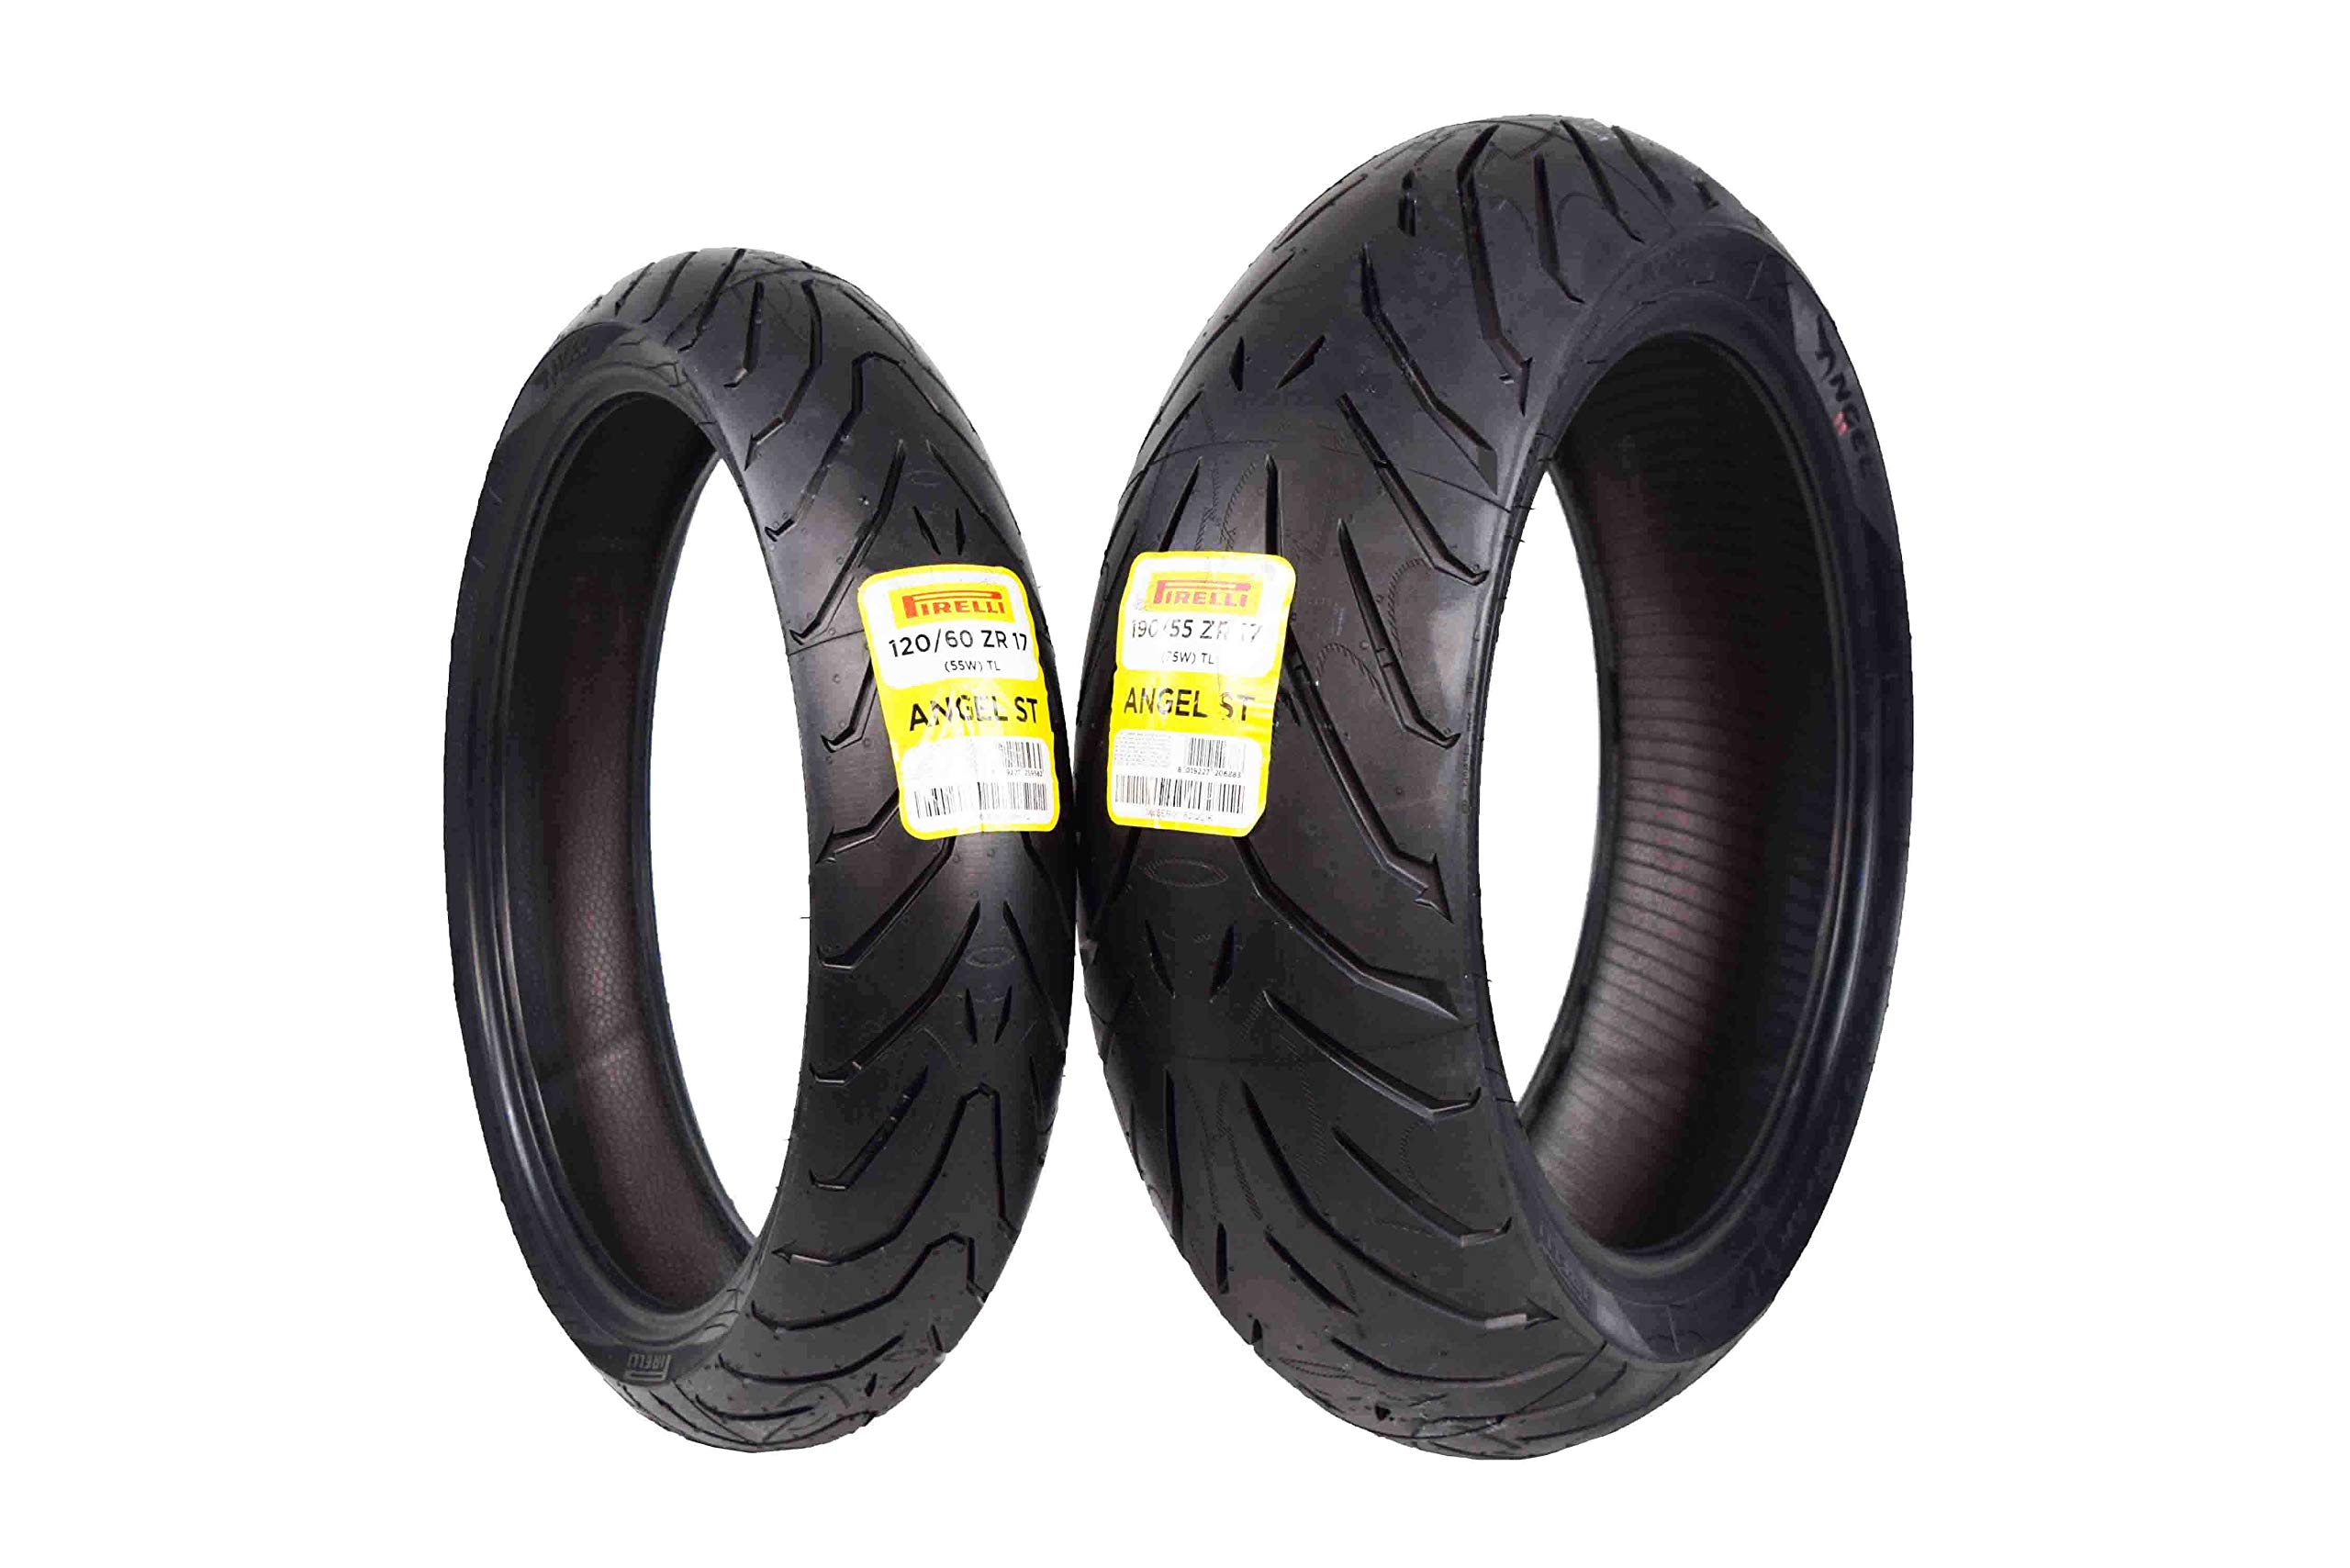 Pirelli Angel ST Front & Rear Street Sport Touring Motorcycle Tires (1x Front 120/60ZR17 1x Rear 190/55ZR17)